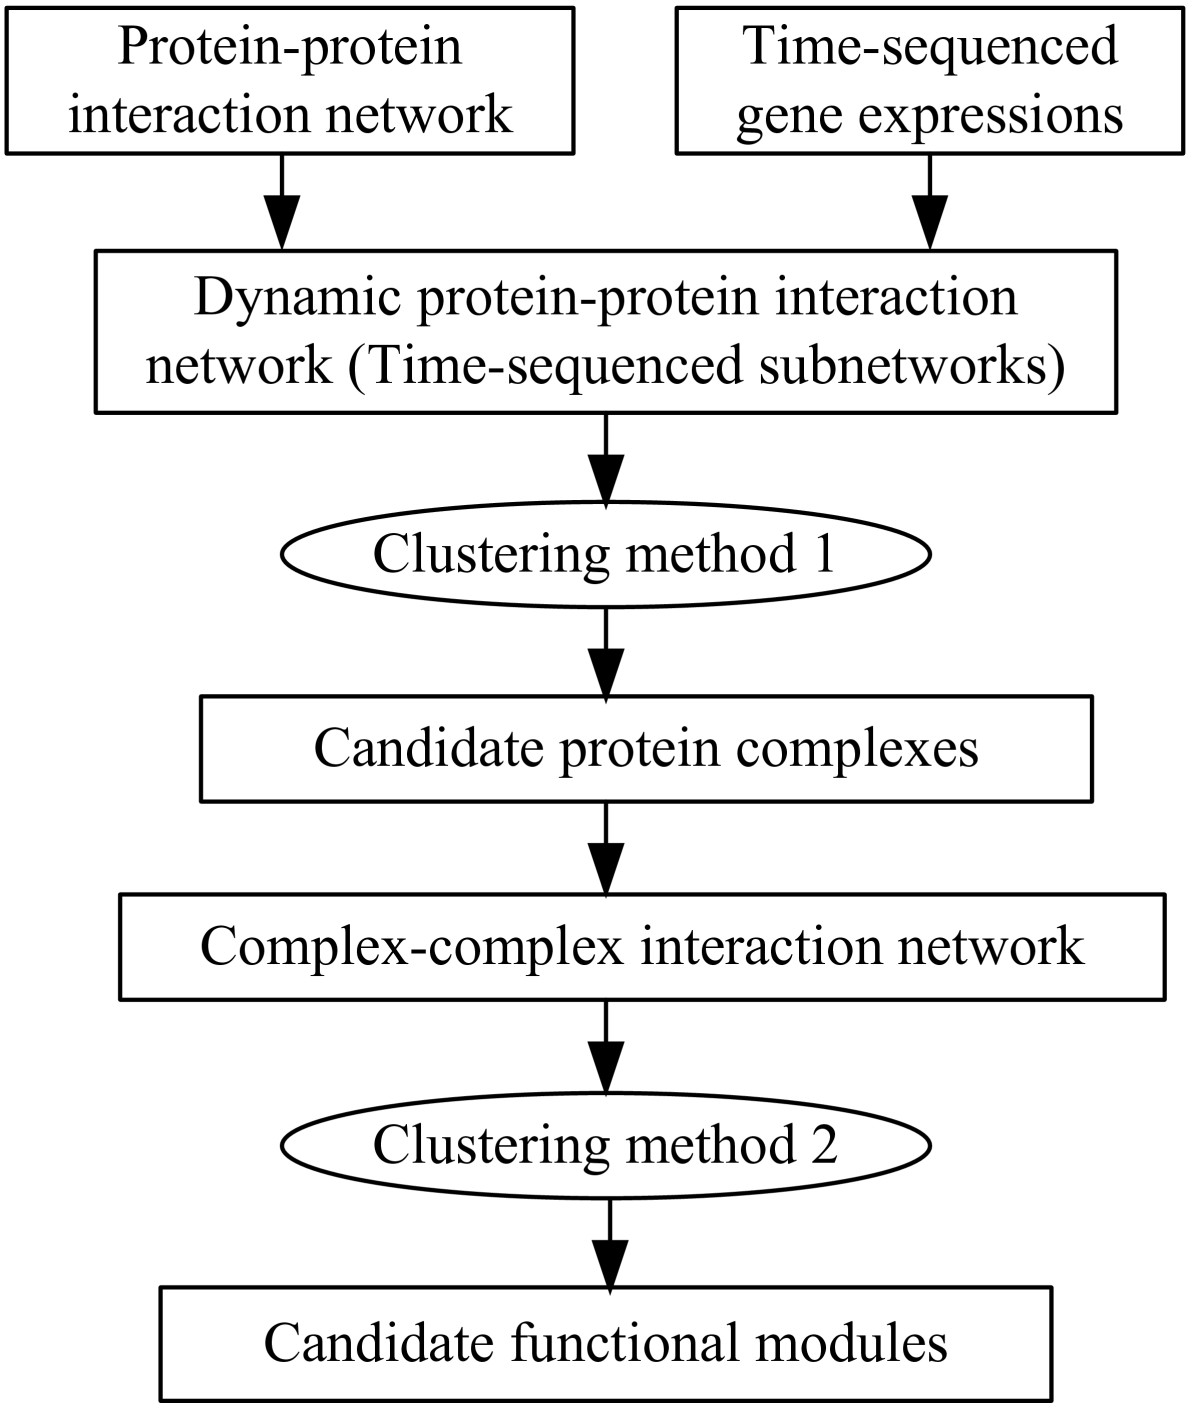 https://static-content.springer.com/image/art%3A10.1186%2F1471-2105-13-109/MediaObjects/12859_2011_Article_5315_Fig1_HTML.jpg